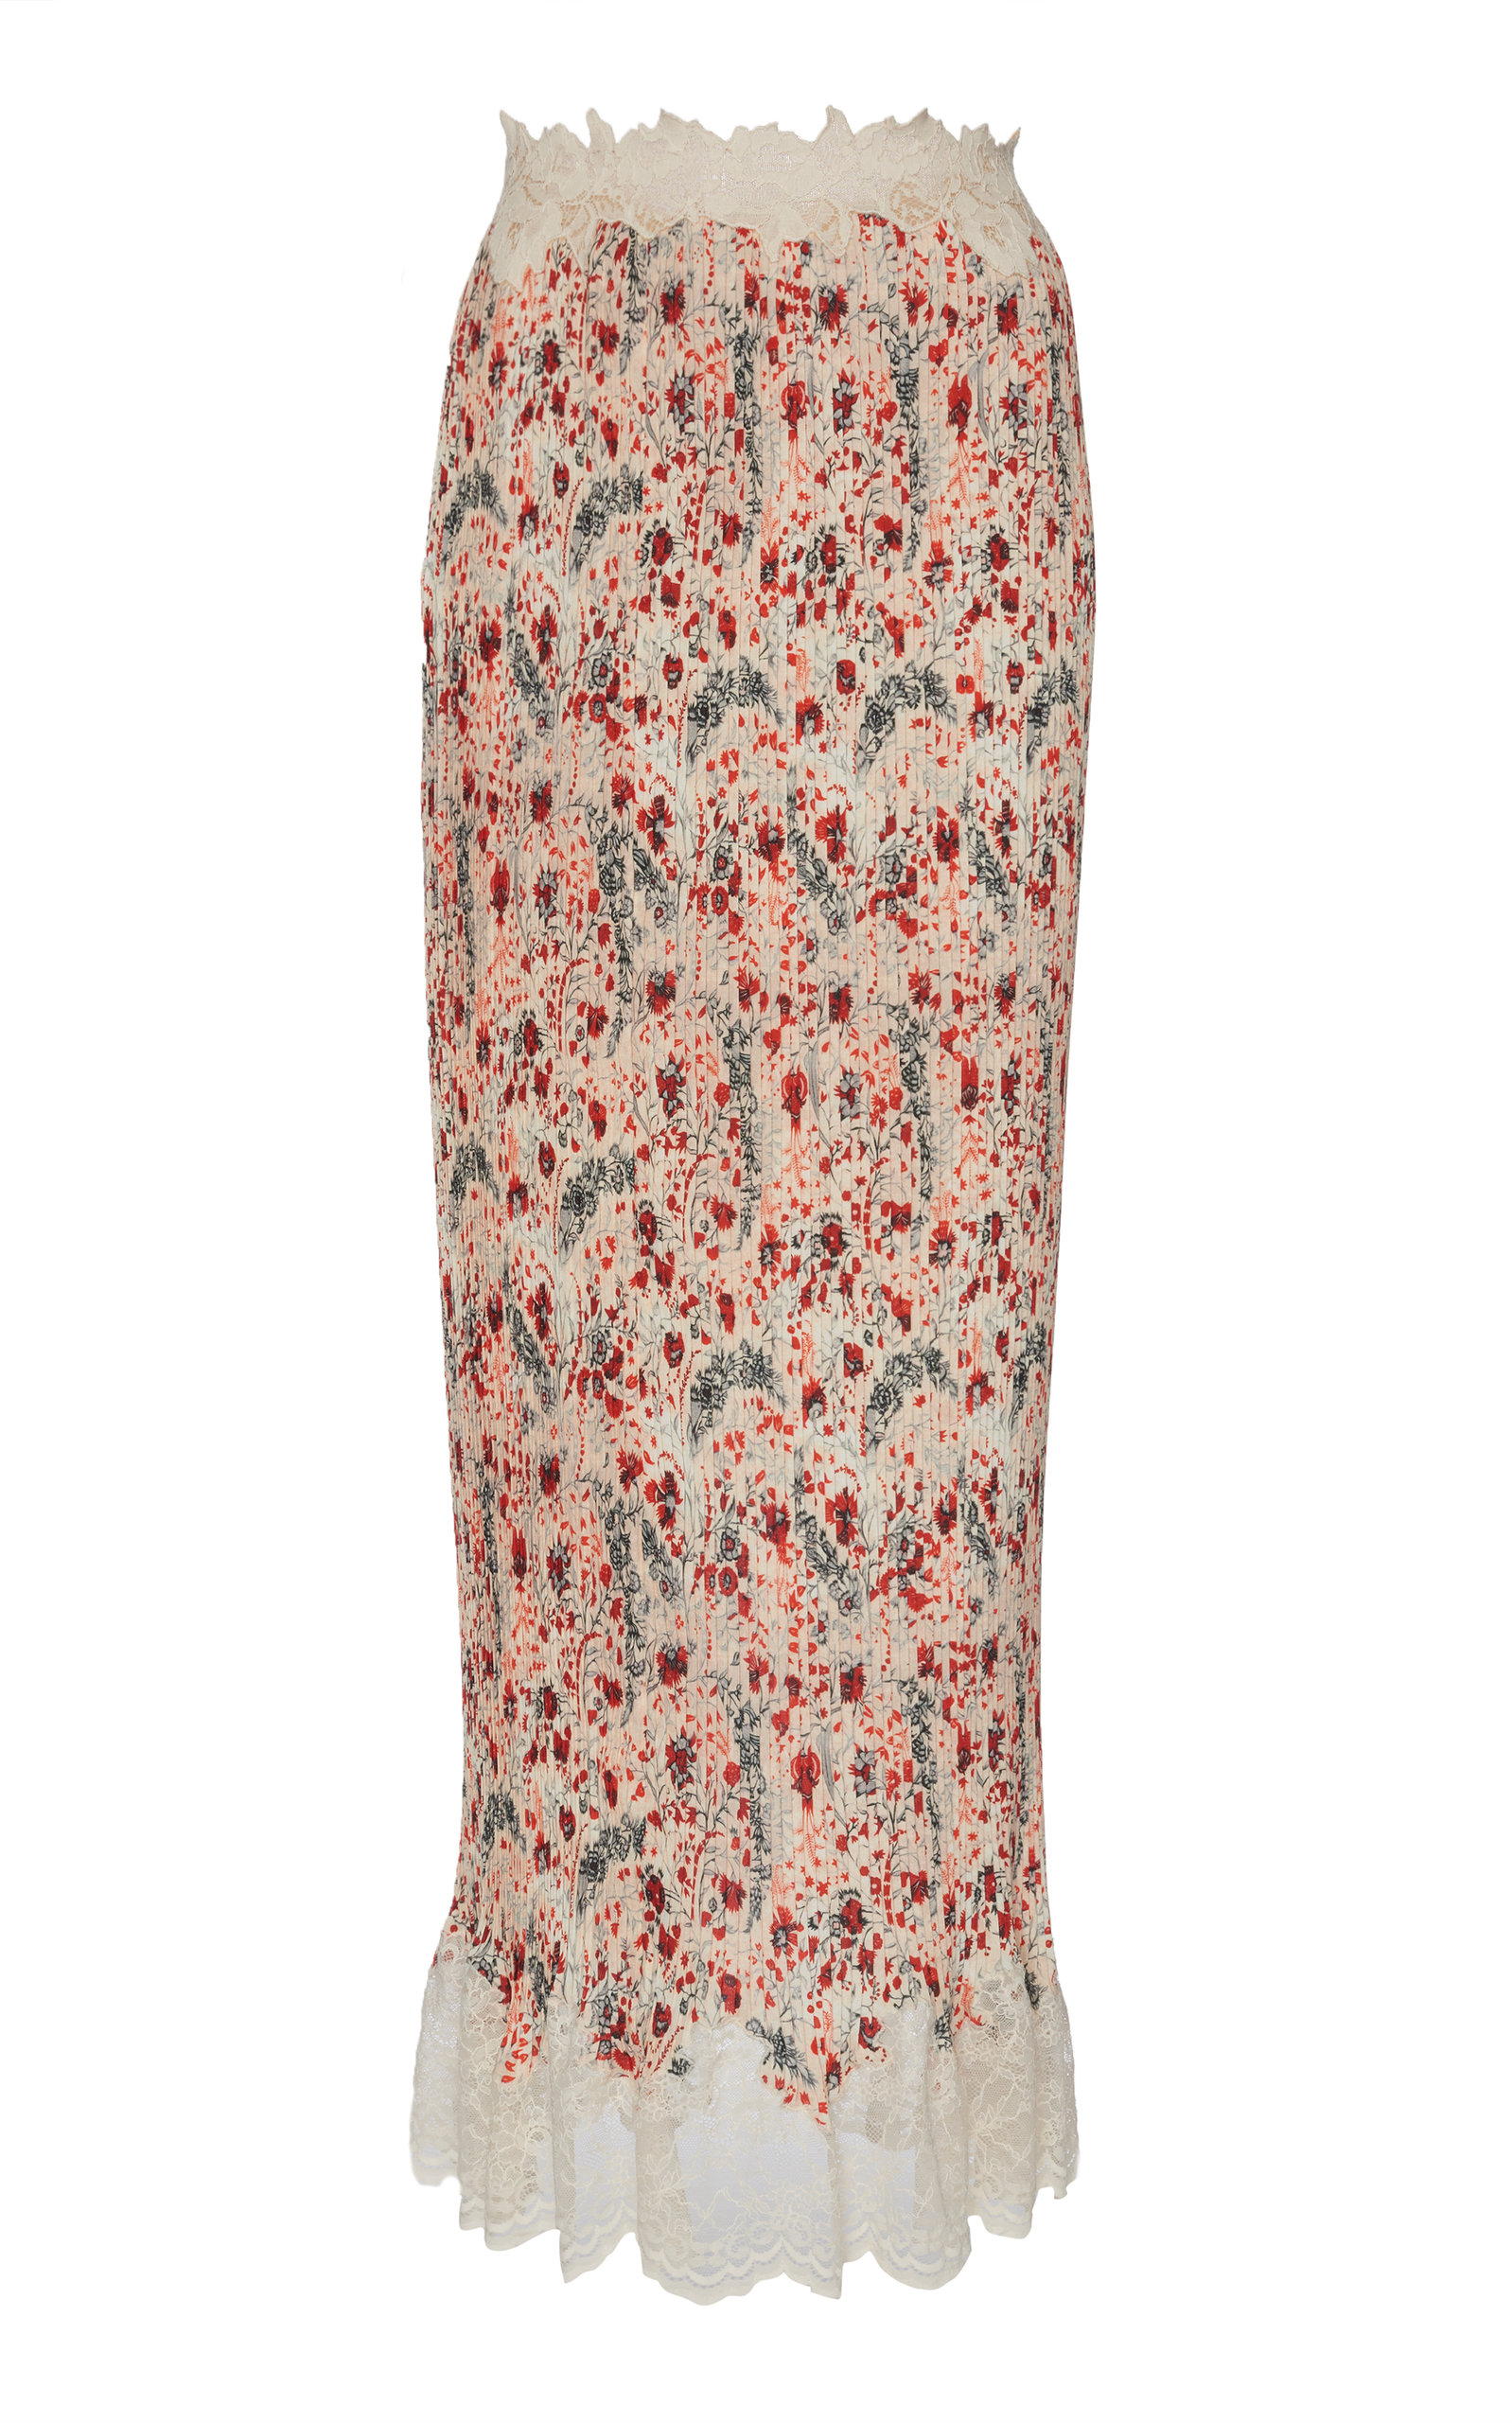 PACO RABANNE   Paco Rabanne Lace-Trimmed Floral-Print Crepe De Chine Maxi Skirt   Goxip